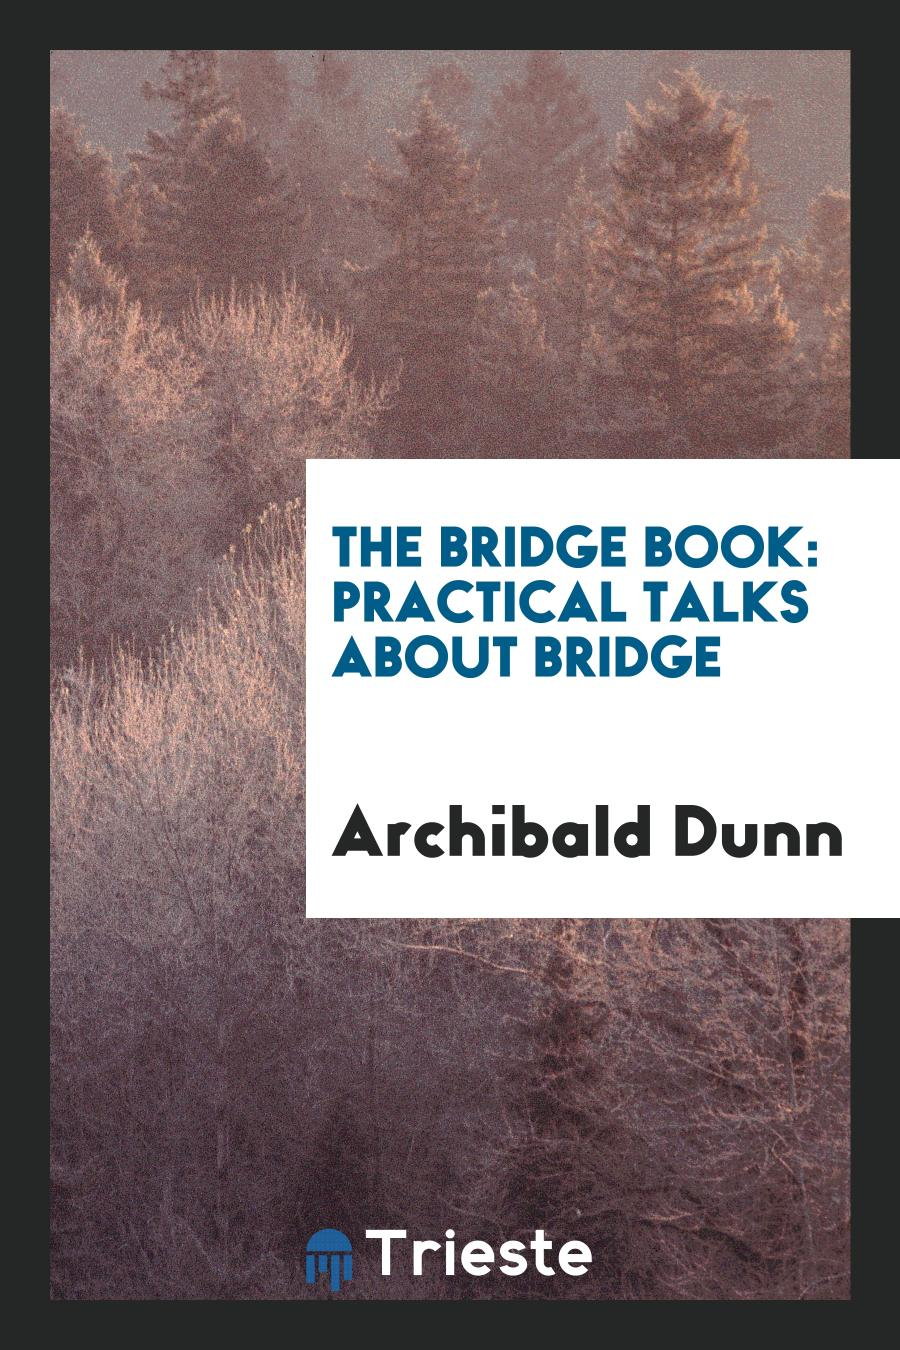 The bridge book: practical talks about bridge